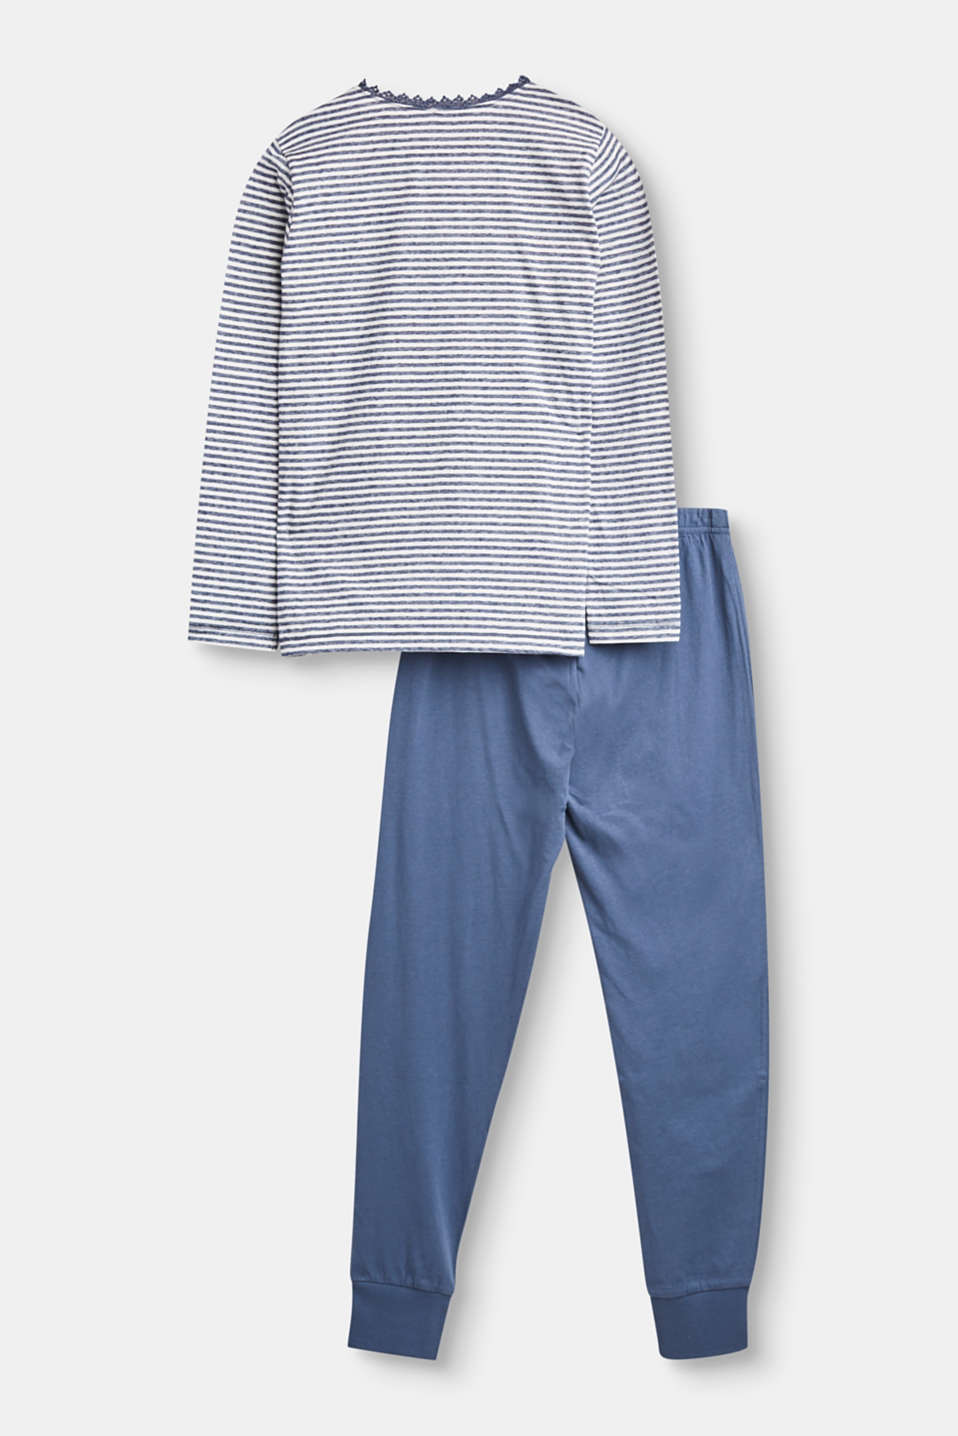 Striped pyjama set with a statement print